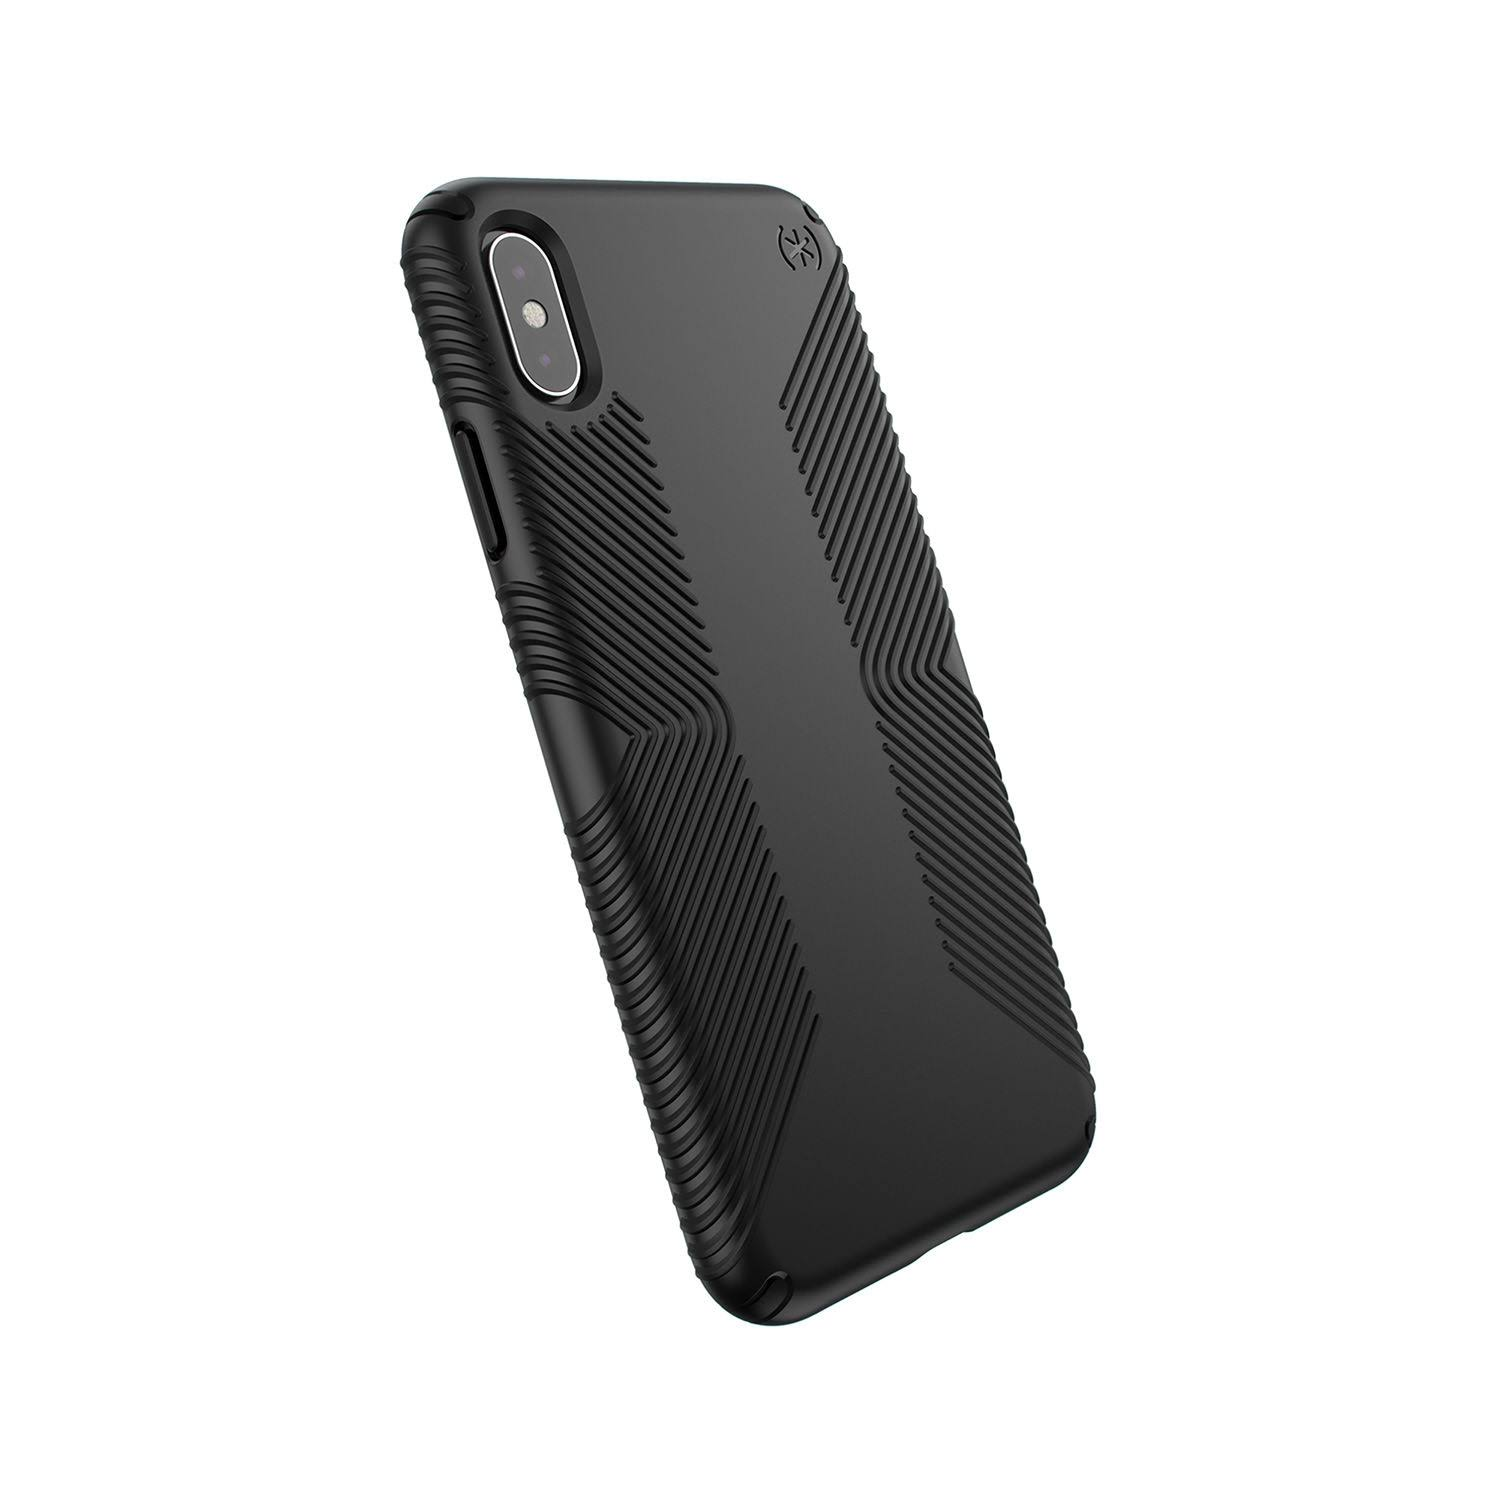 Speck Presidio Grip Cover for iPhone XS Max - Black